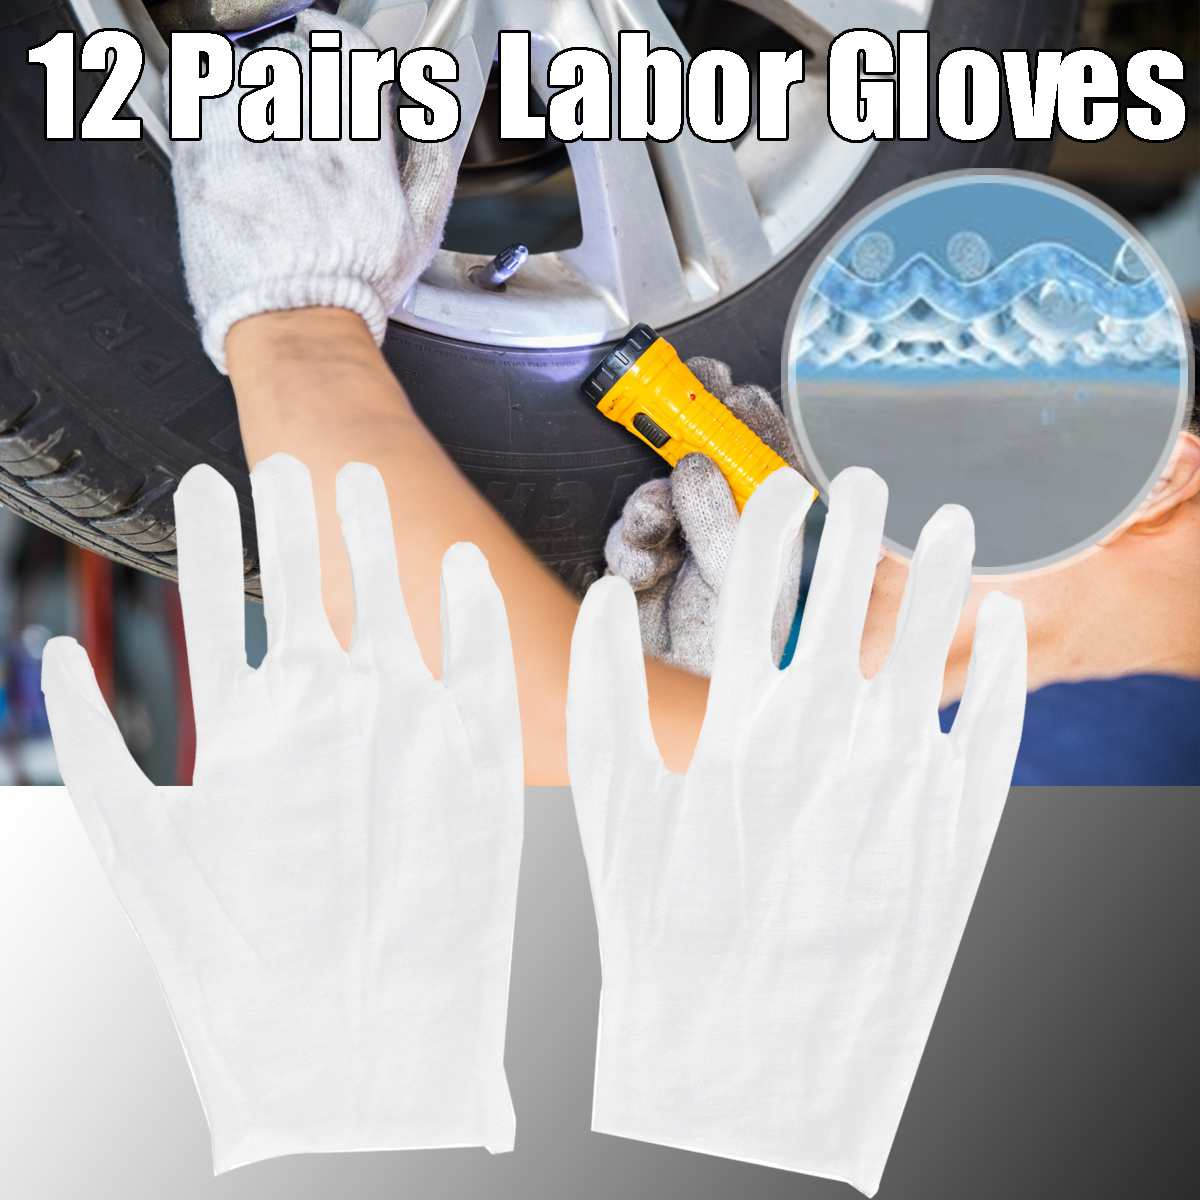 12 Pair Full Finger Gloves Cotton White Gloves Free Size Men Women Waiters Jewelry DIY Workers Non-slip Gloves Hands Protector